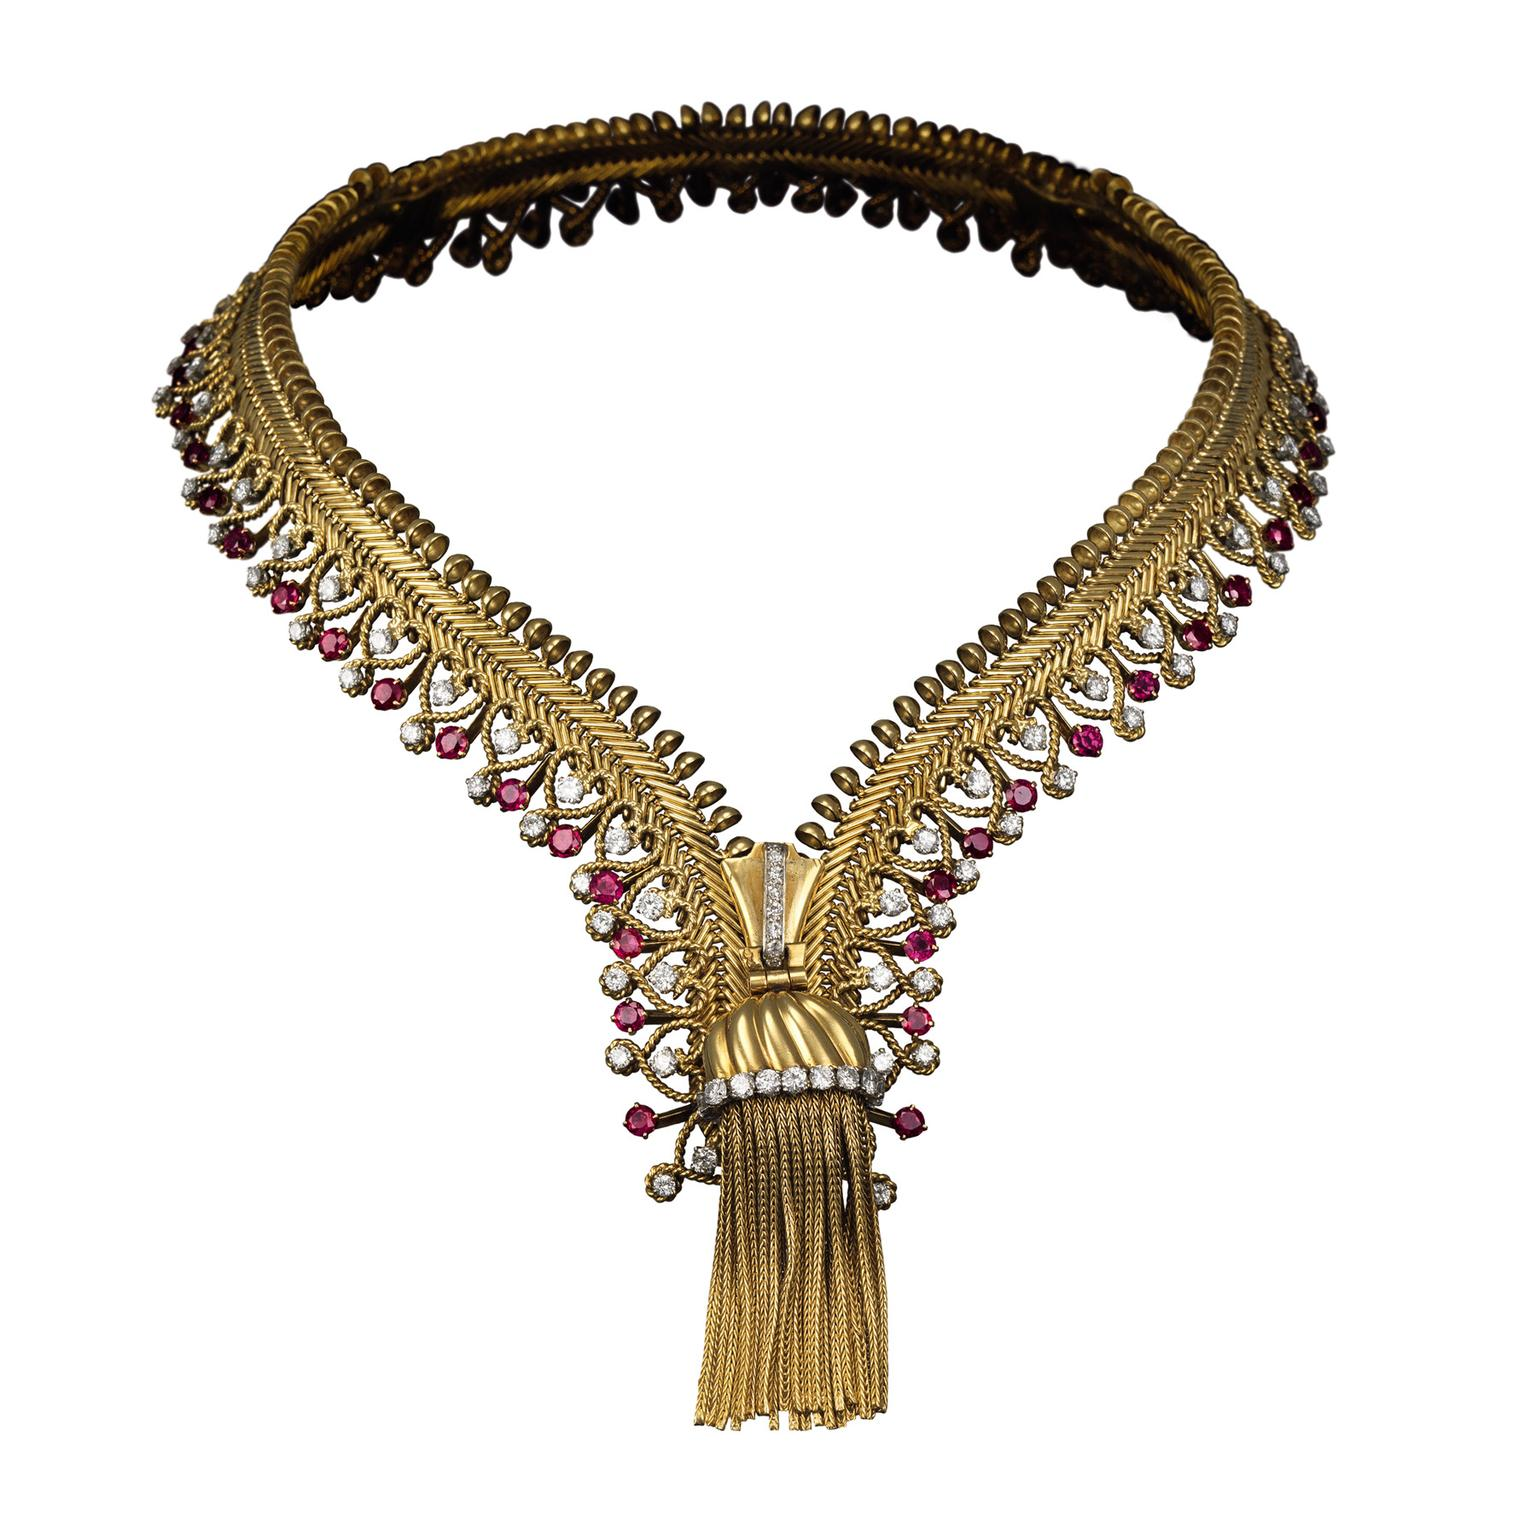 Van Cleef & Arpels ruby zip necklace 1954